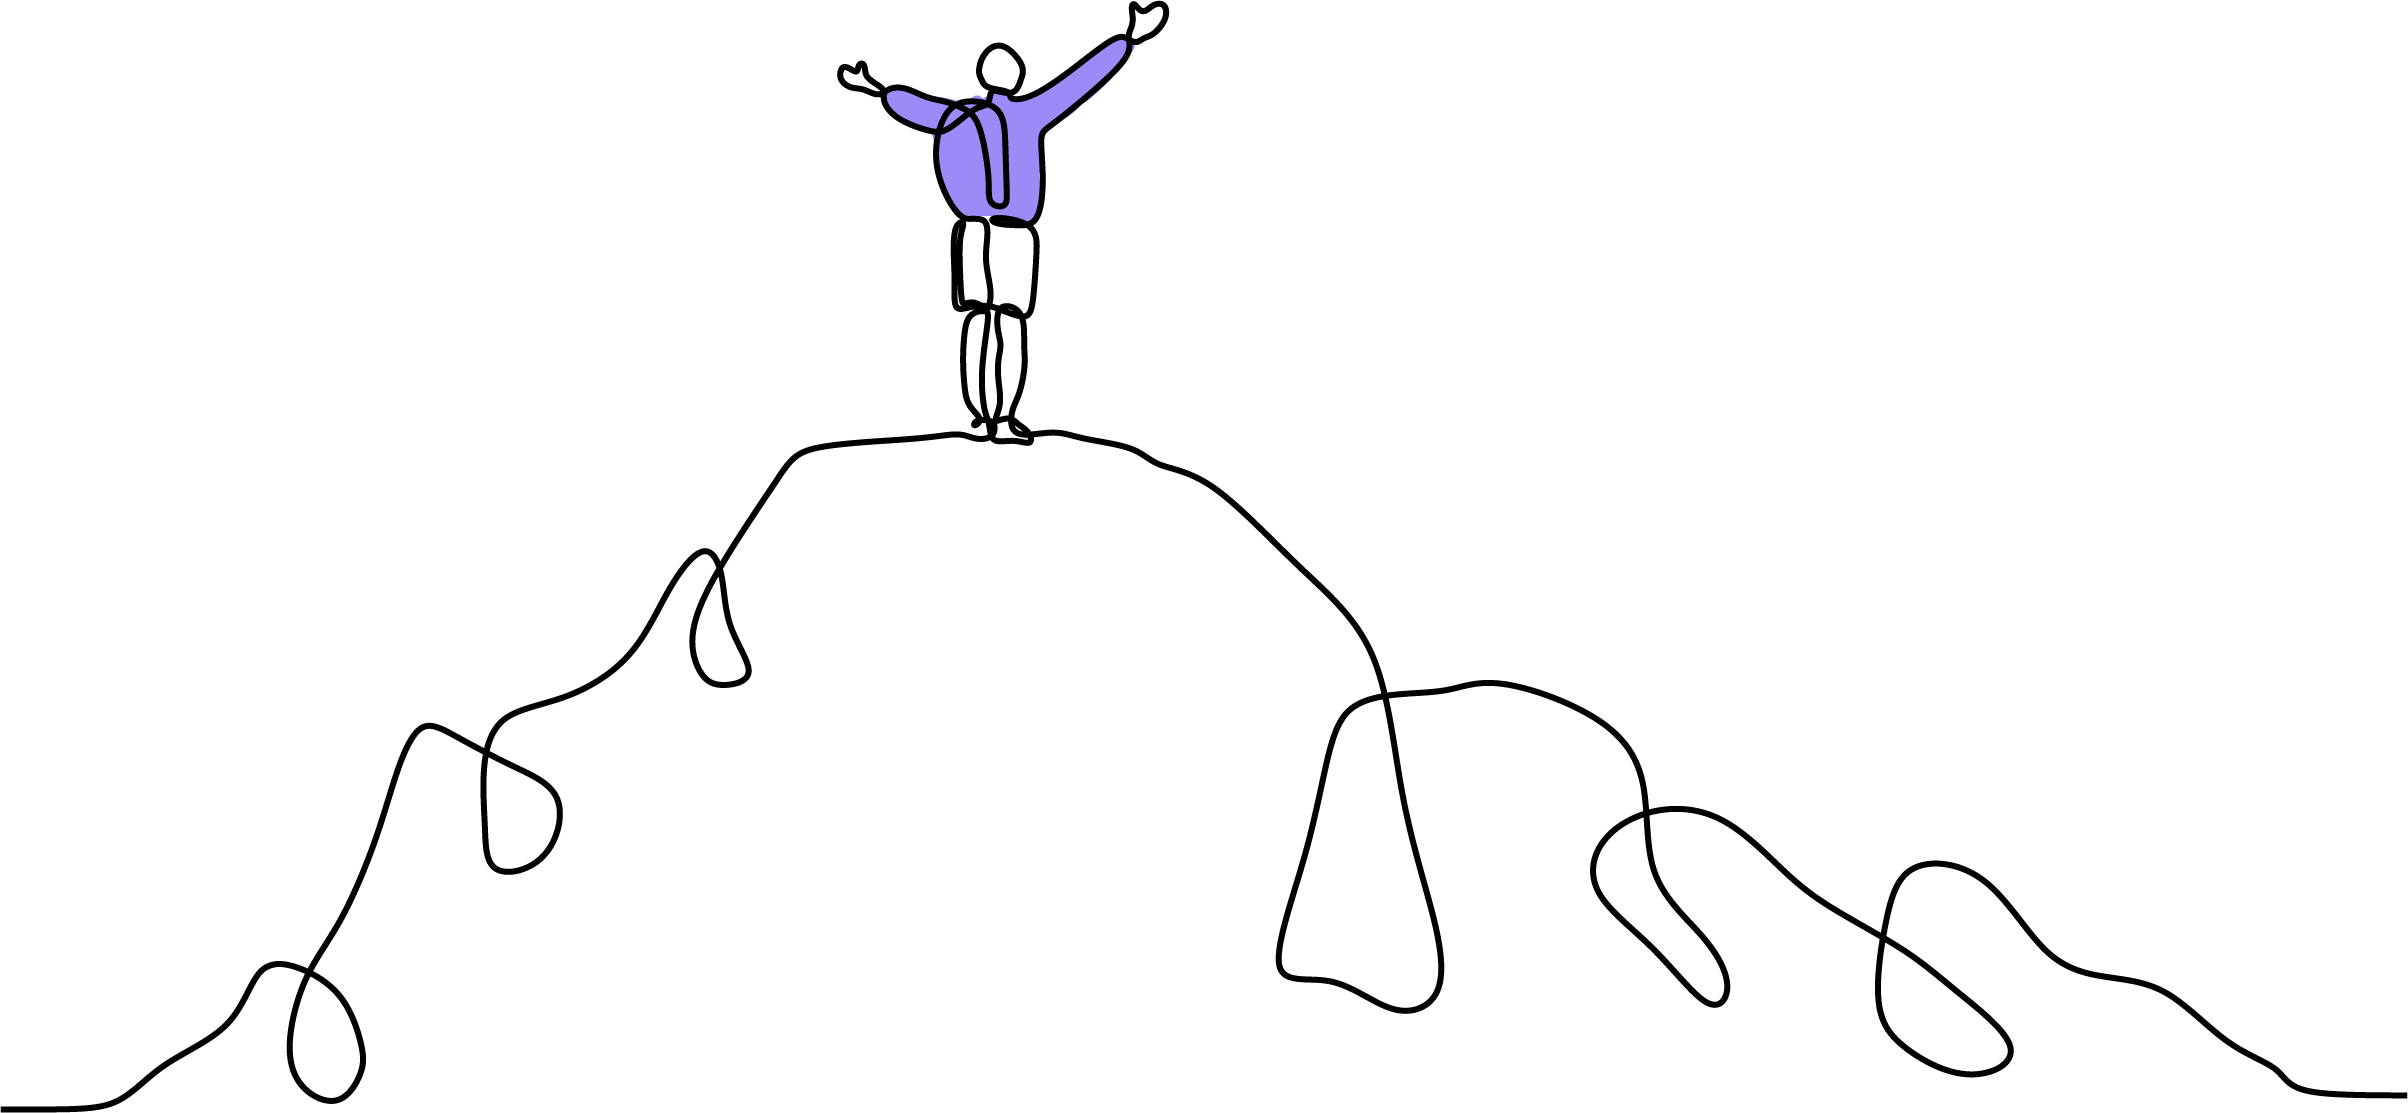 Image showing a person standing atop a mountain. Accomplishment.